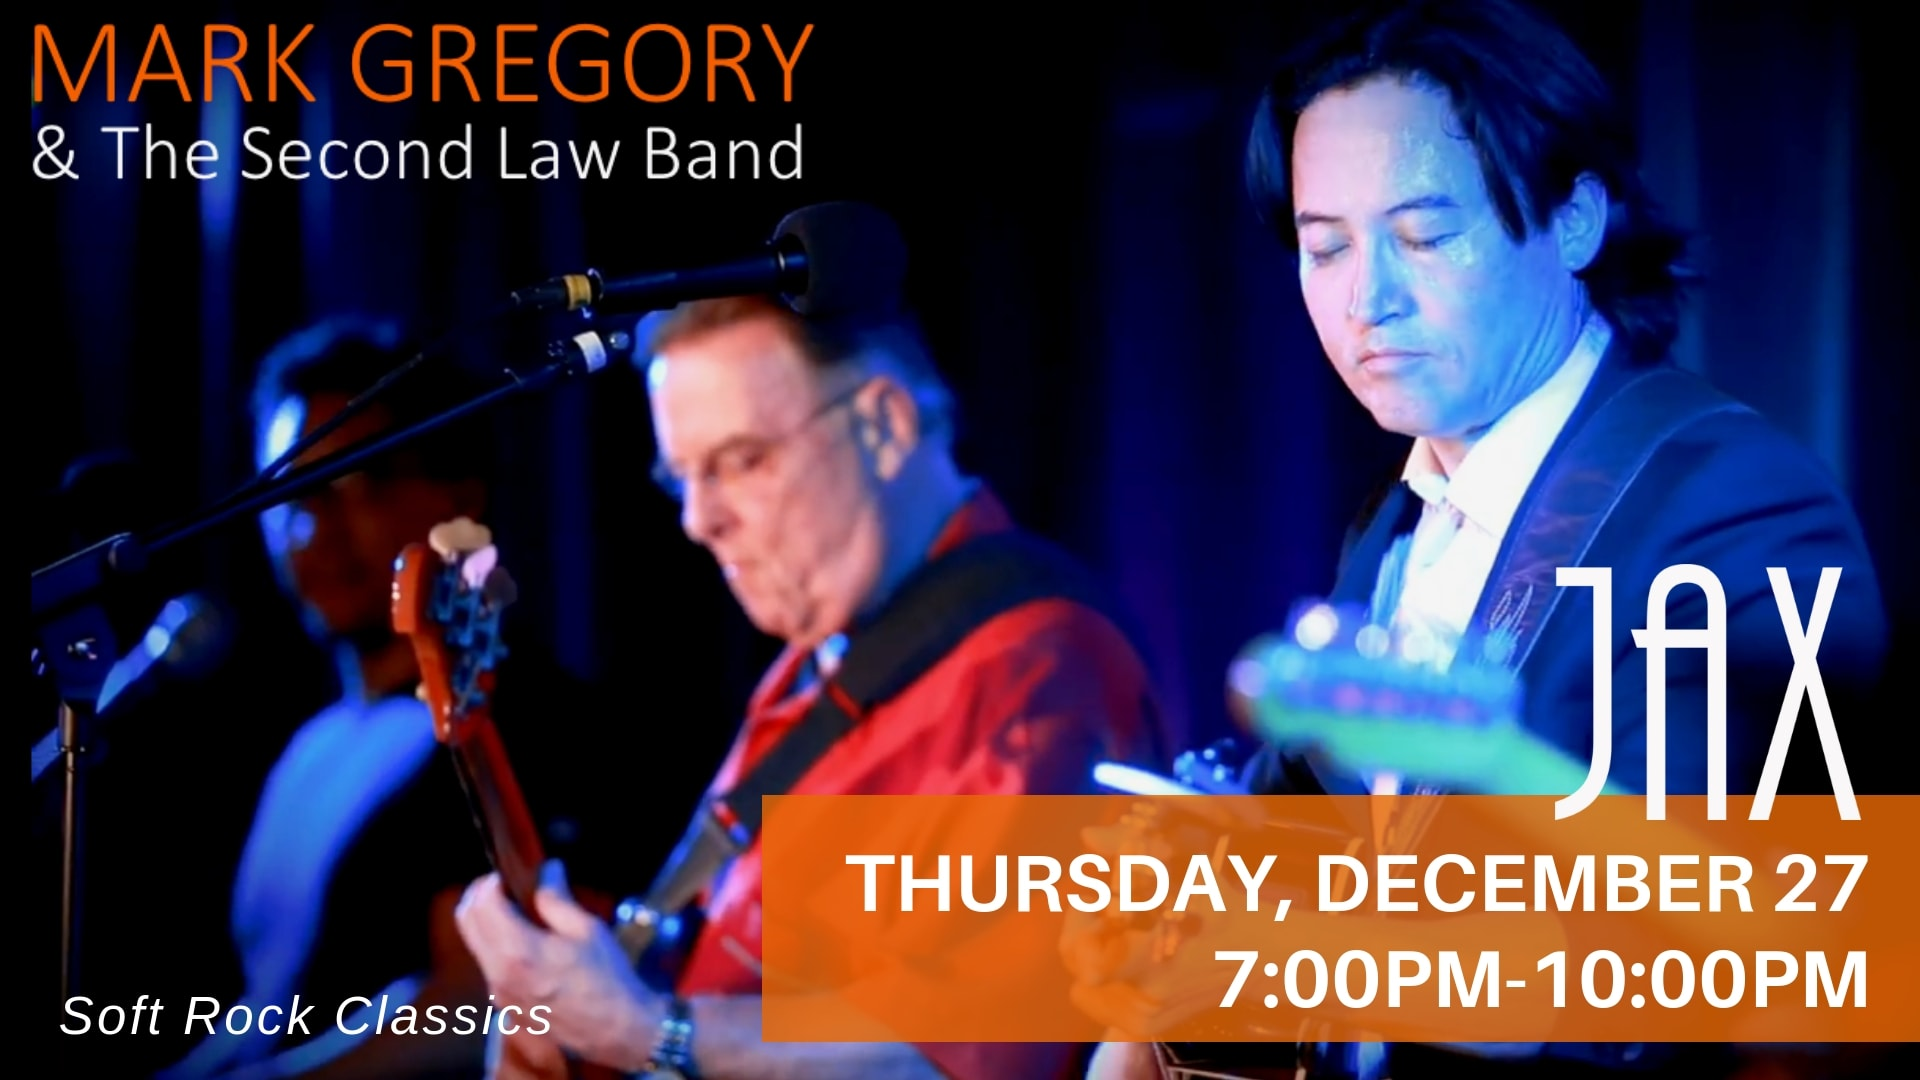 December 27 | MARK GREGORY & THE SECOND LAW BAND